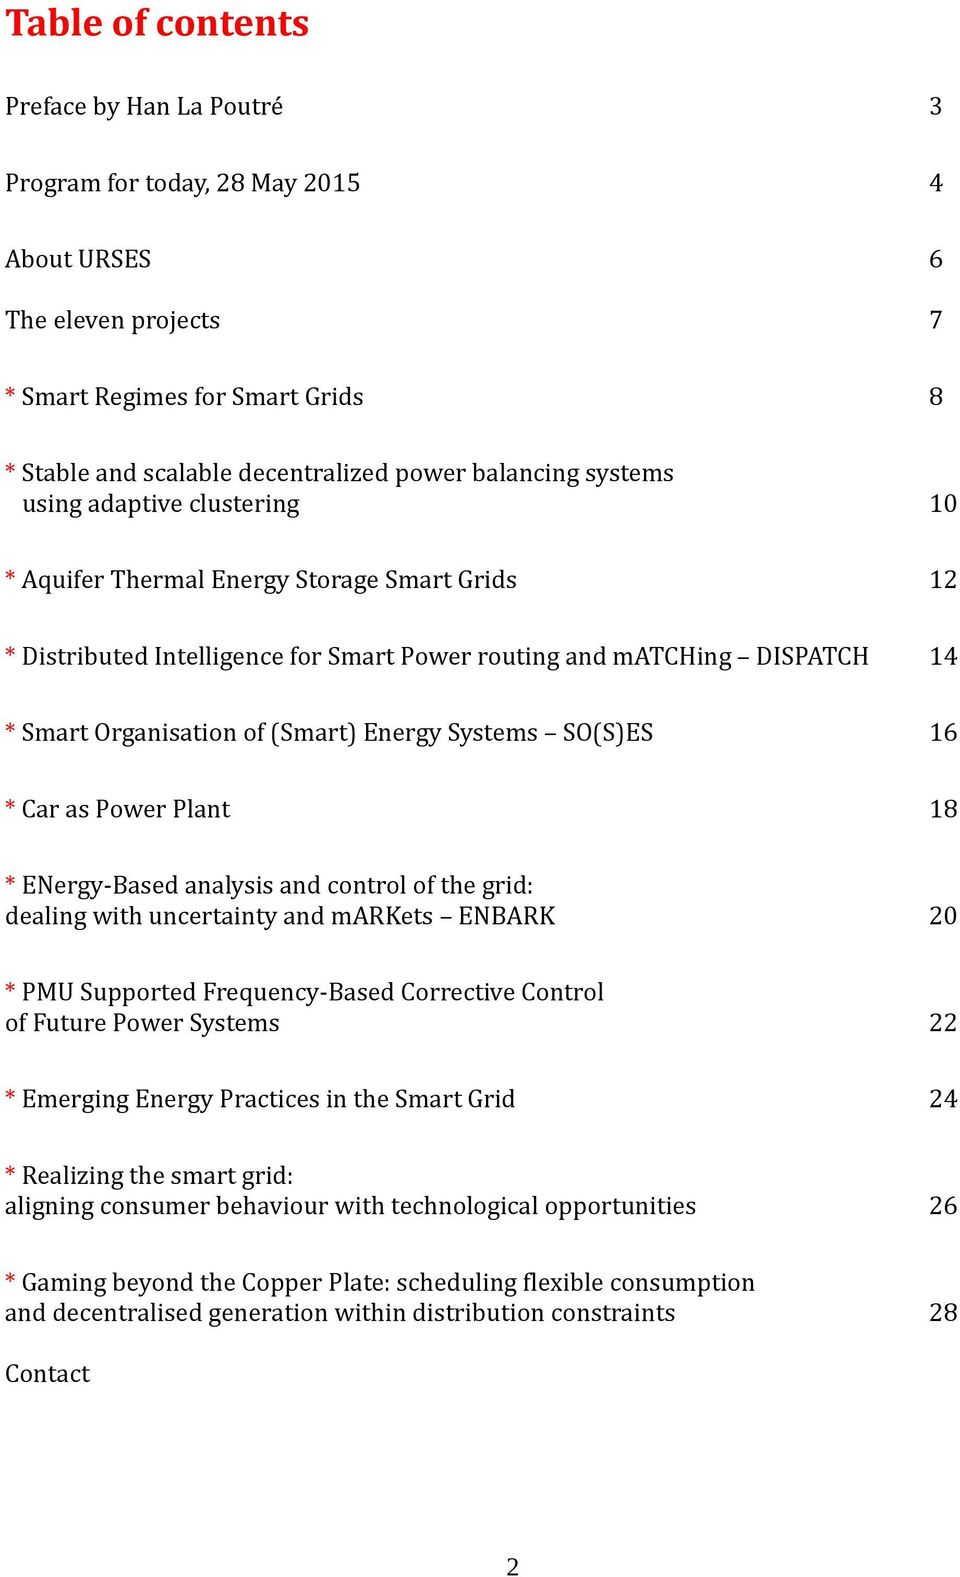 Systems SO(S)ES 16 * Car as Power Plant 18 * ENergy-Based analysis and control of the grid: dealing with uncertainty and markets ENBARK 20 * PMU Supported Frequency-Based Corrective Control of Future